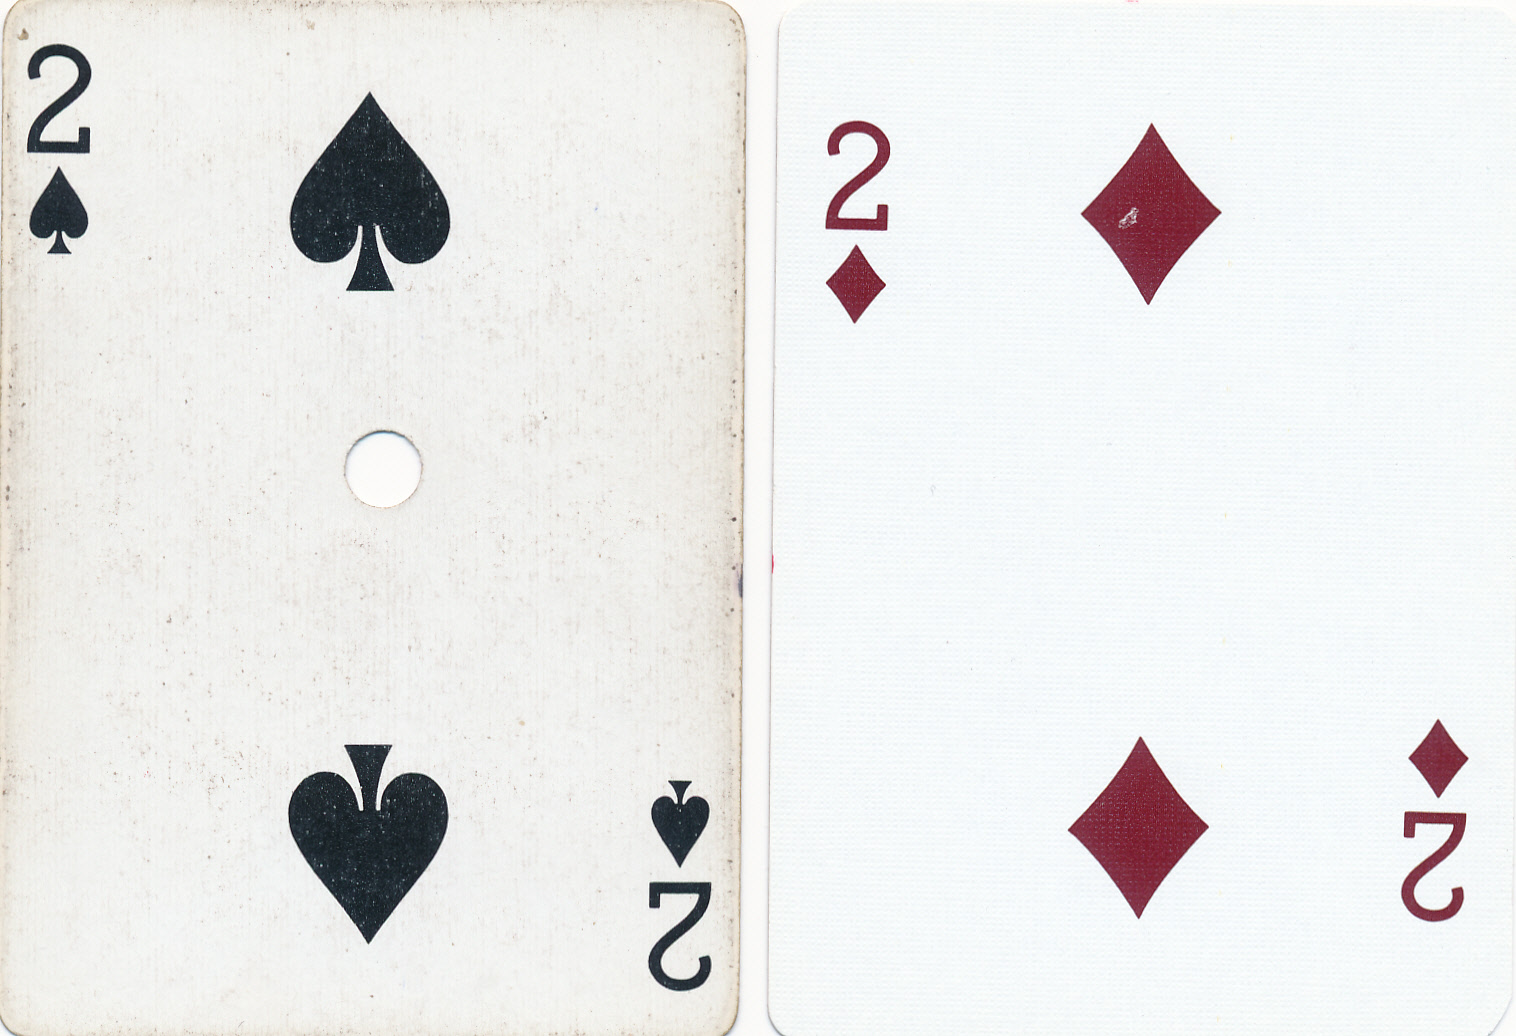 Notice the slightly recessed numbers on the right side casino card